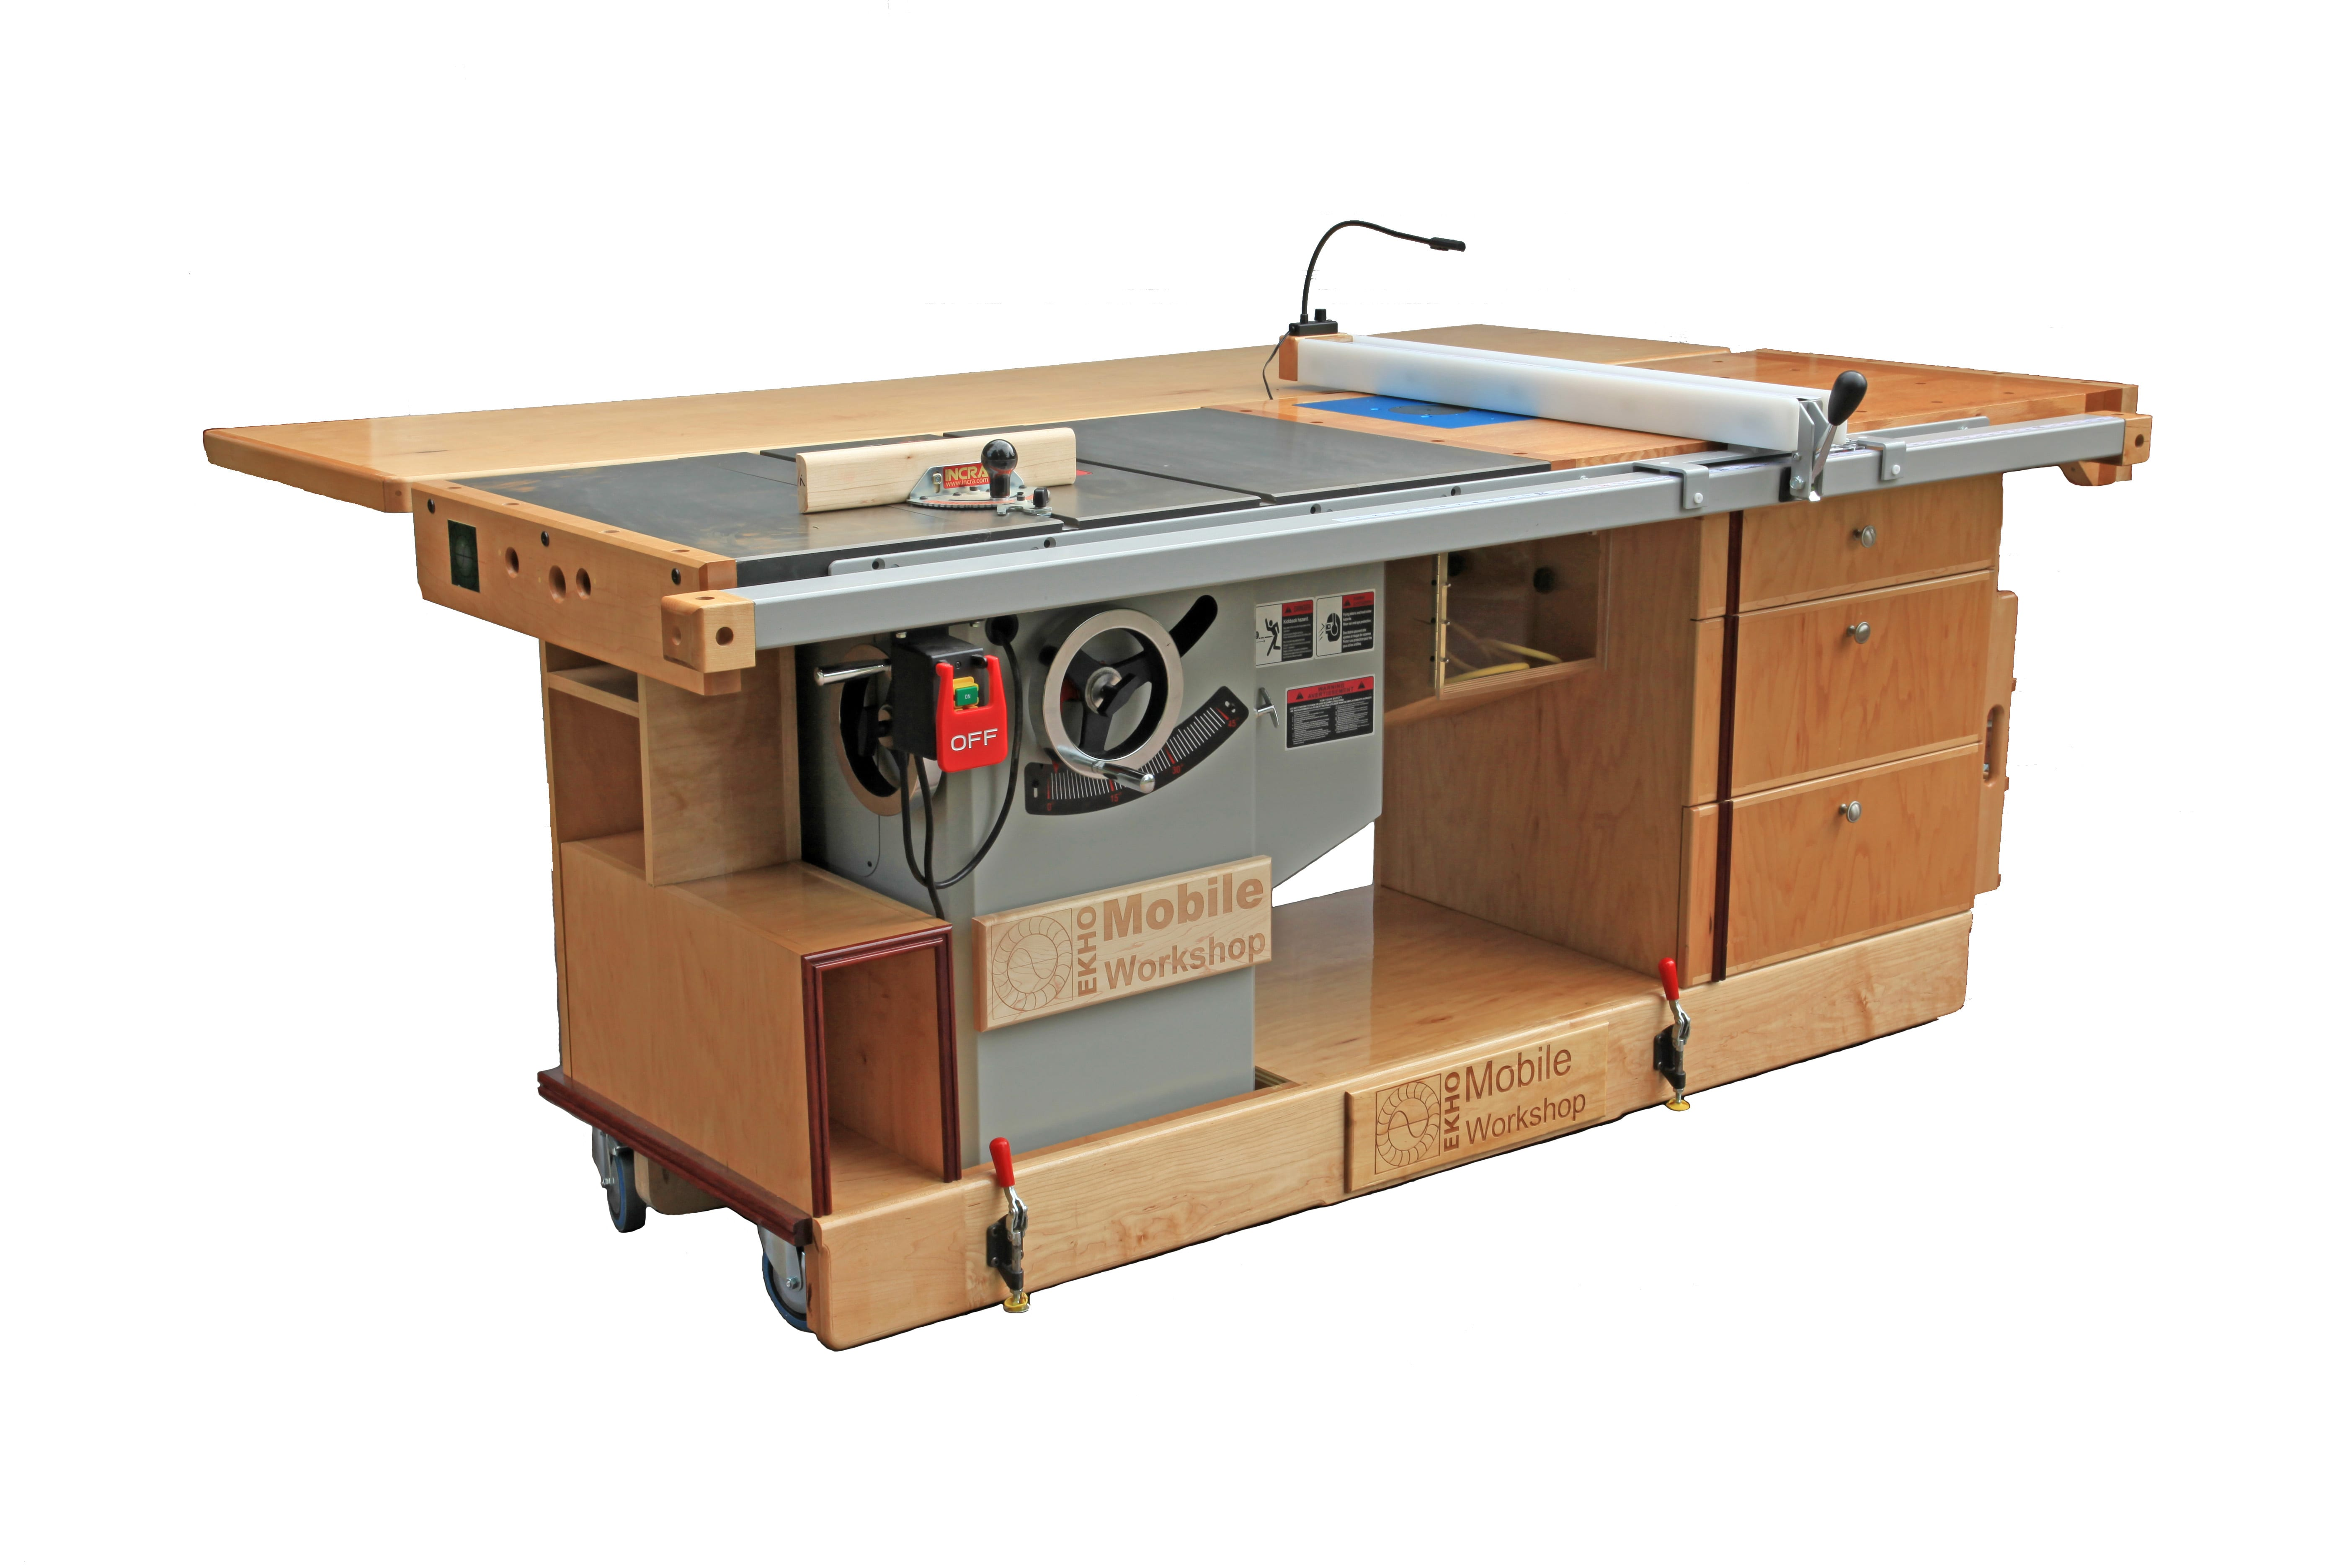 Choosing The Right Table Saw Can Make All The Difference